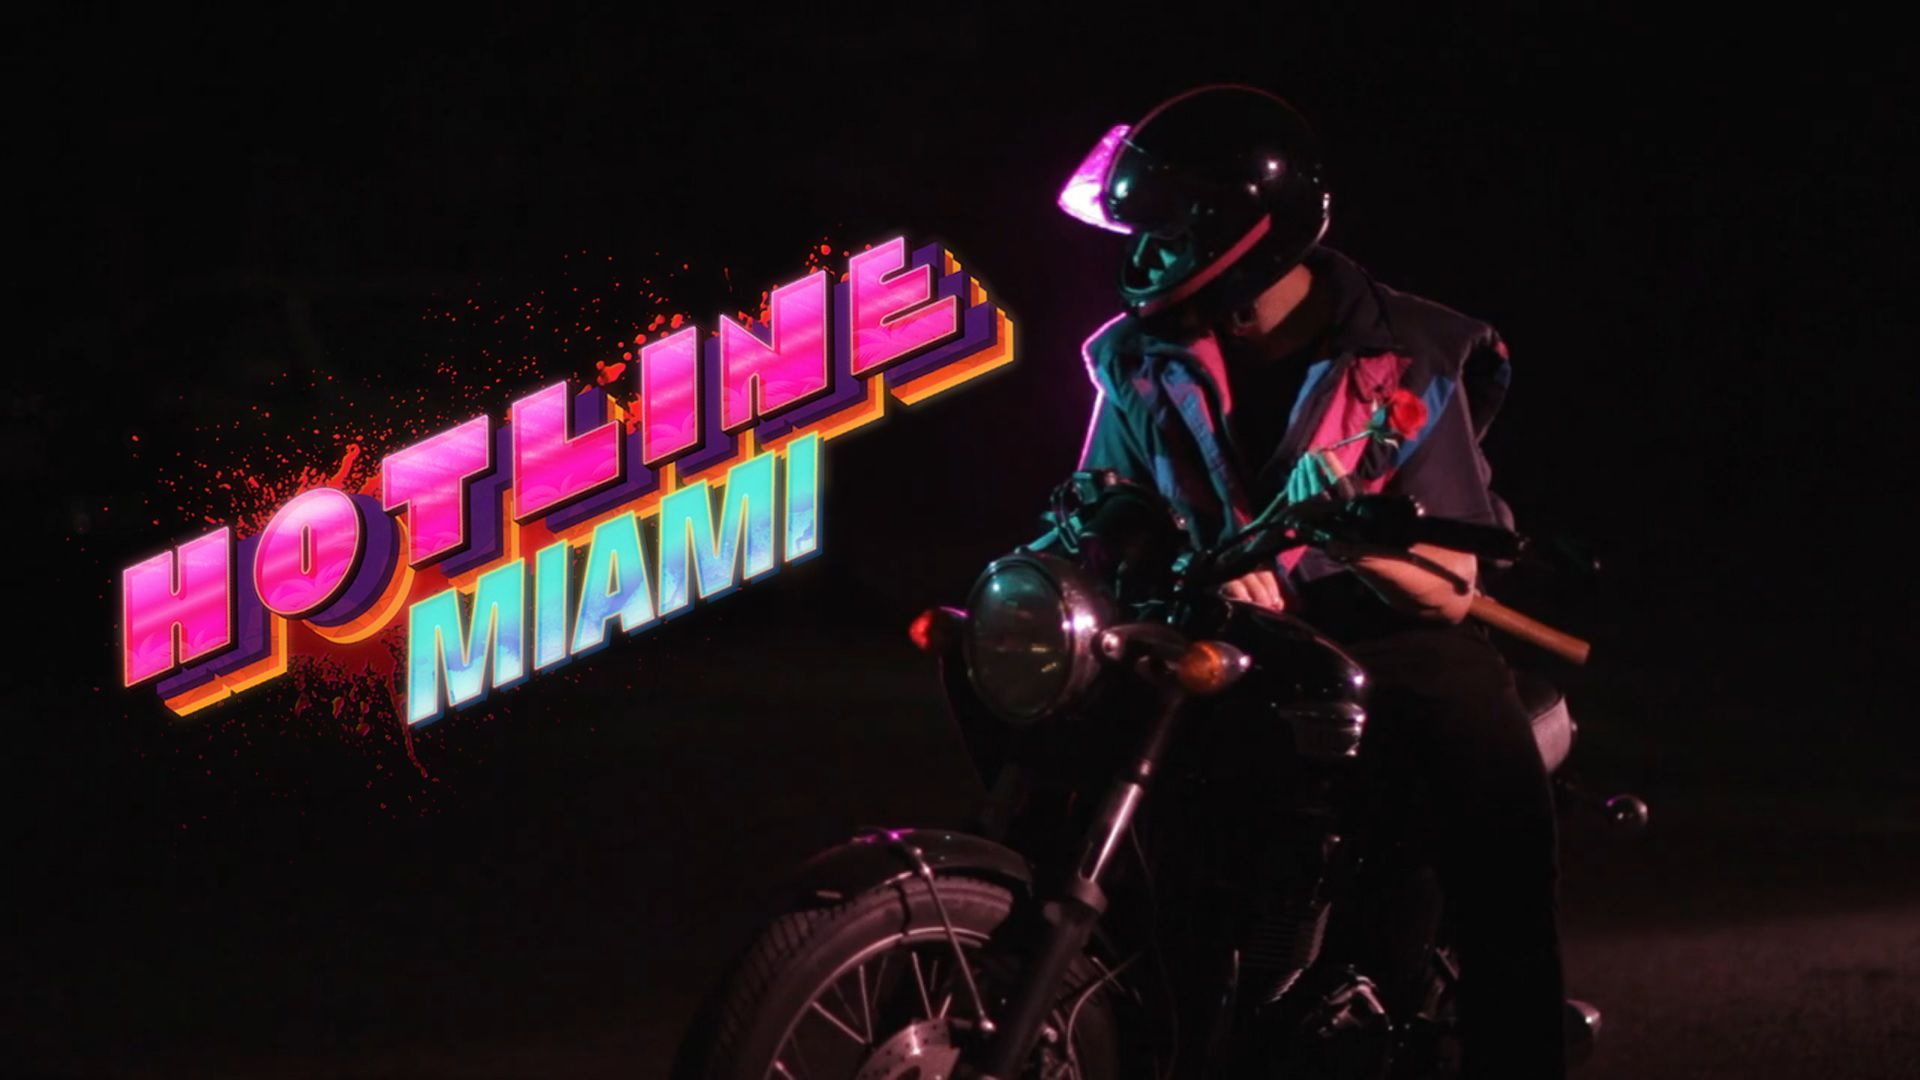 While I Love The Neo Noir Vibes Of This Frame The Contrast Of Blackness And Fluorescent Neon It S Not So Much This Frame Hotline Miami Miami Miami Wallpaper